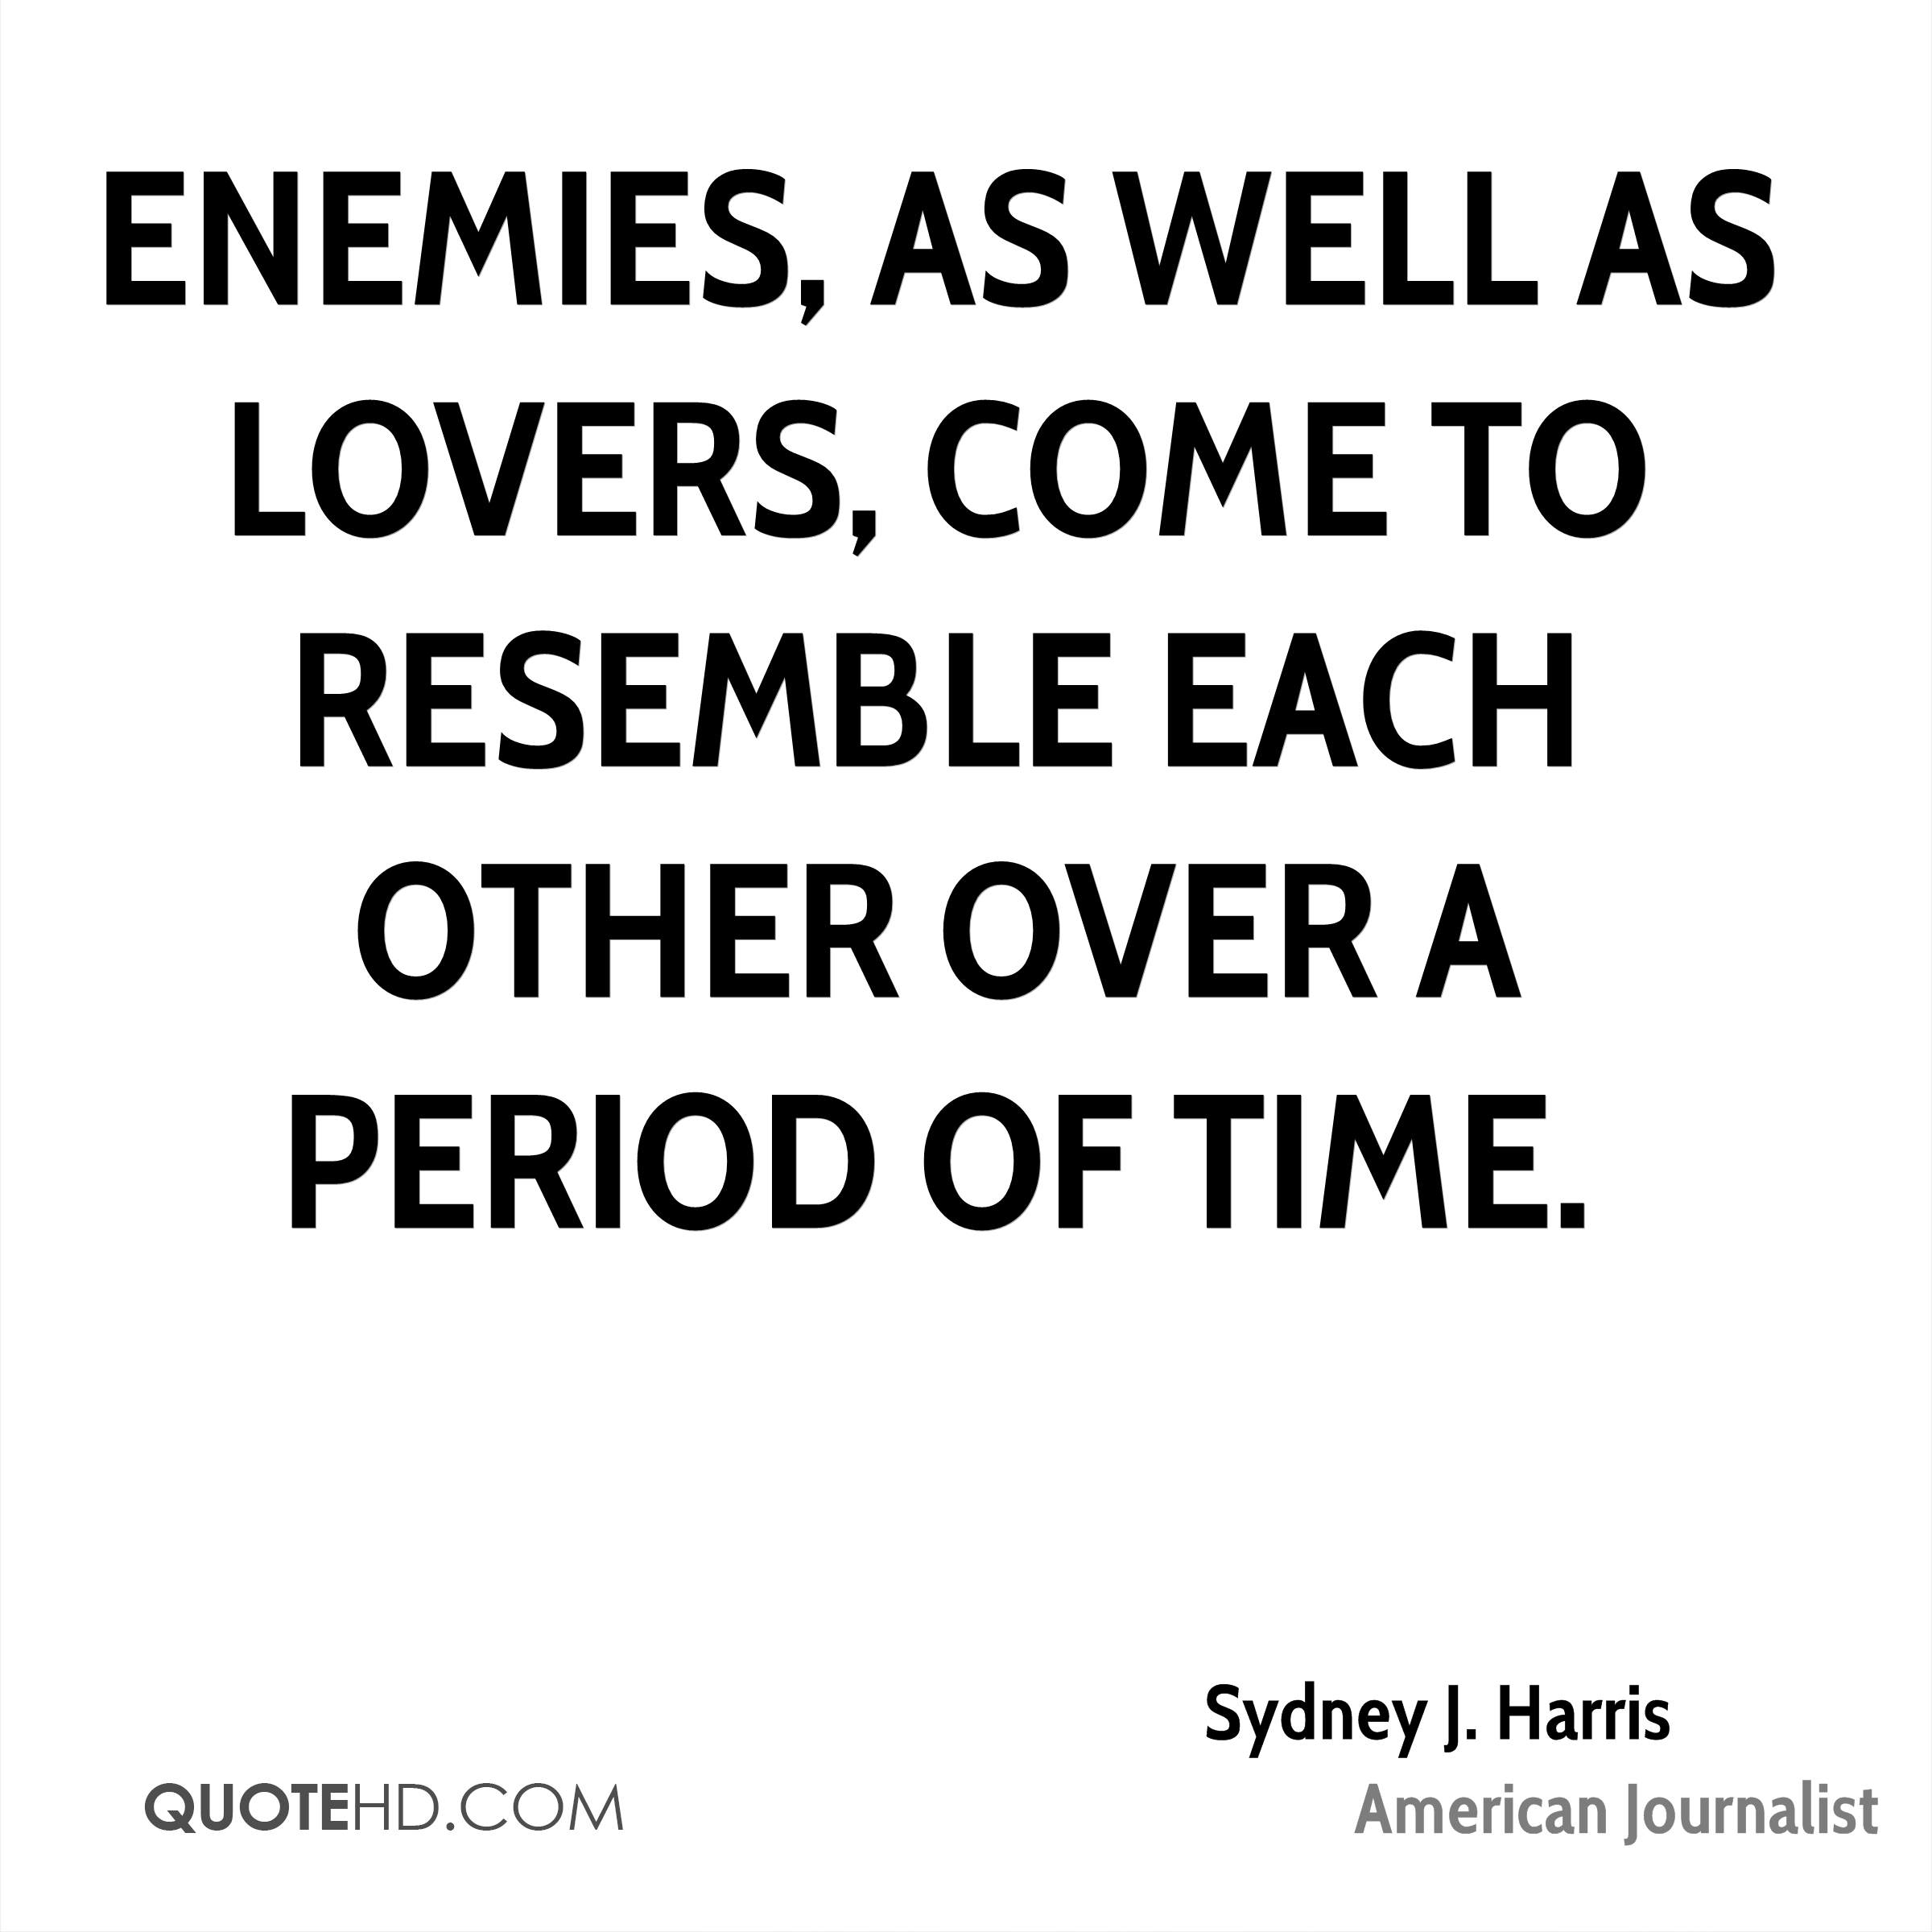 Enemies, as well as lovers, come to resemble each other over a period of time.